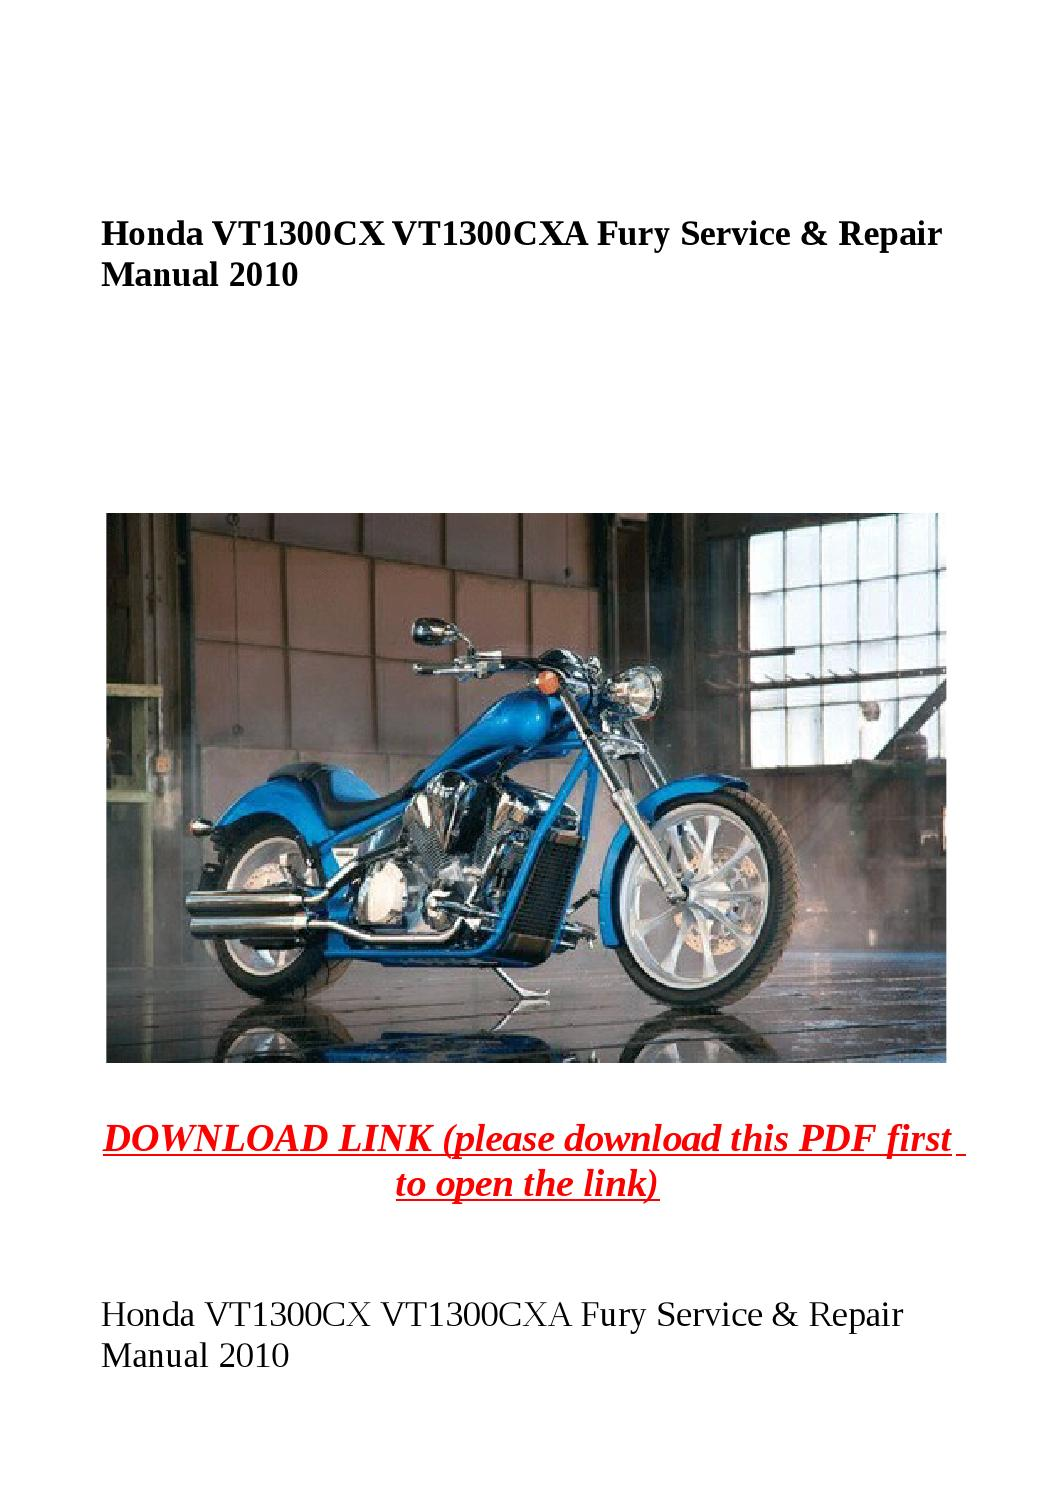 honda wave 100 user manual pdf